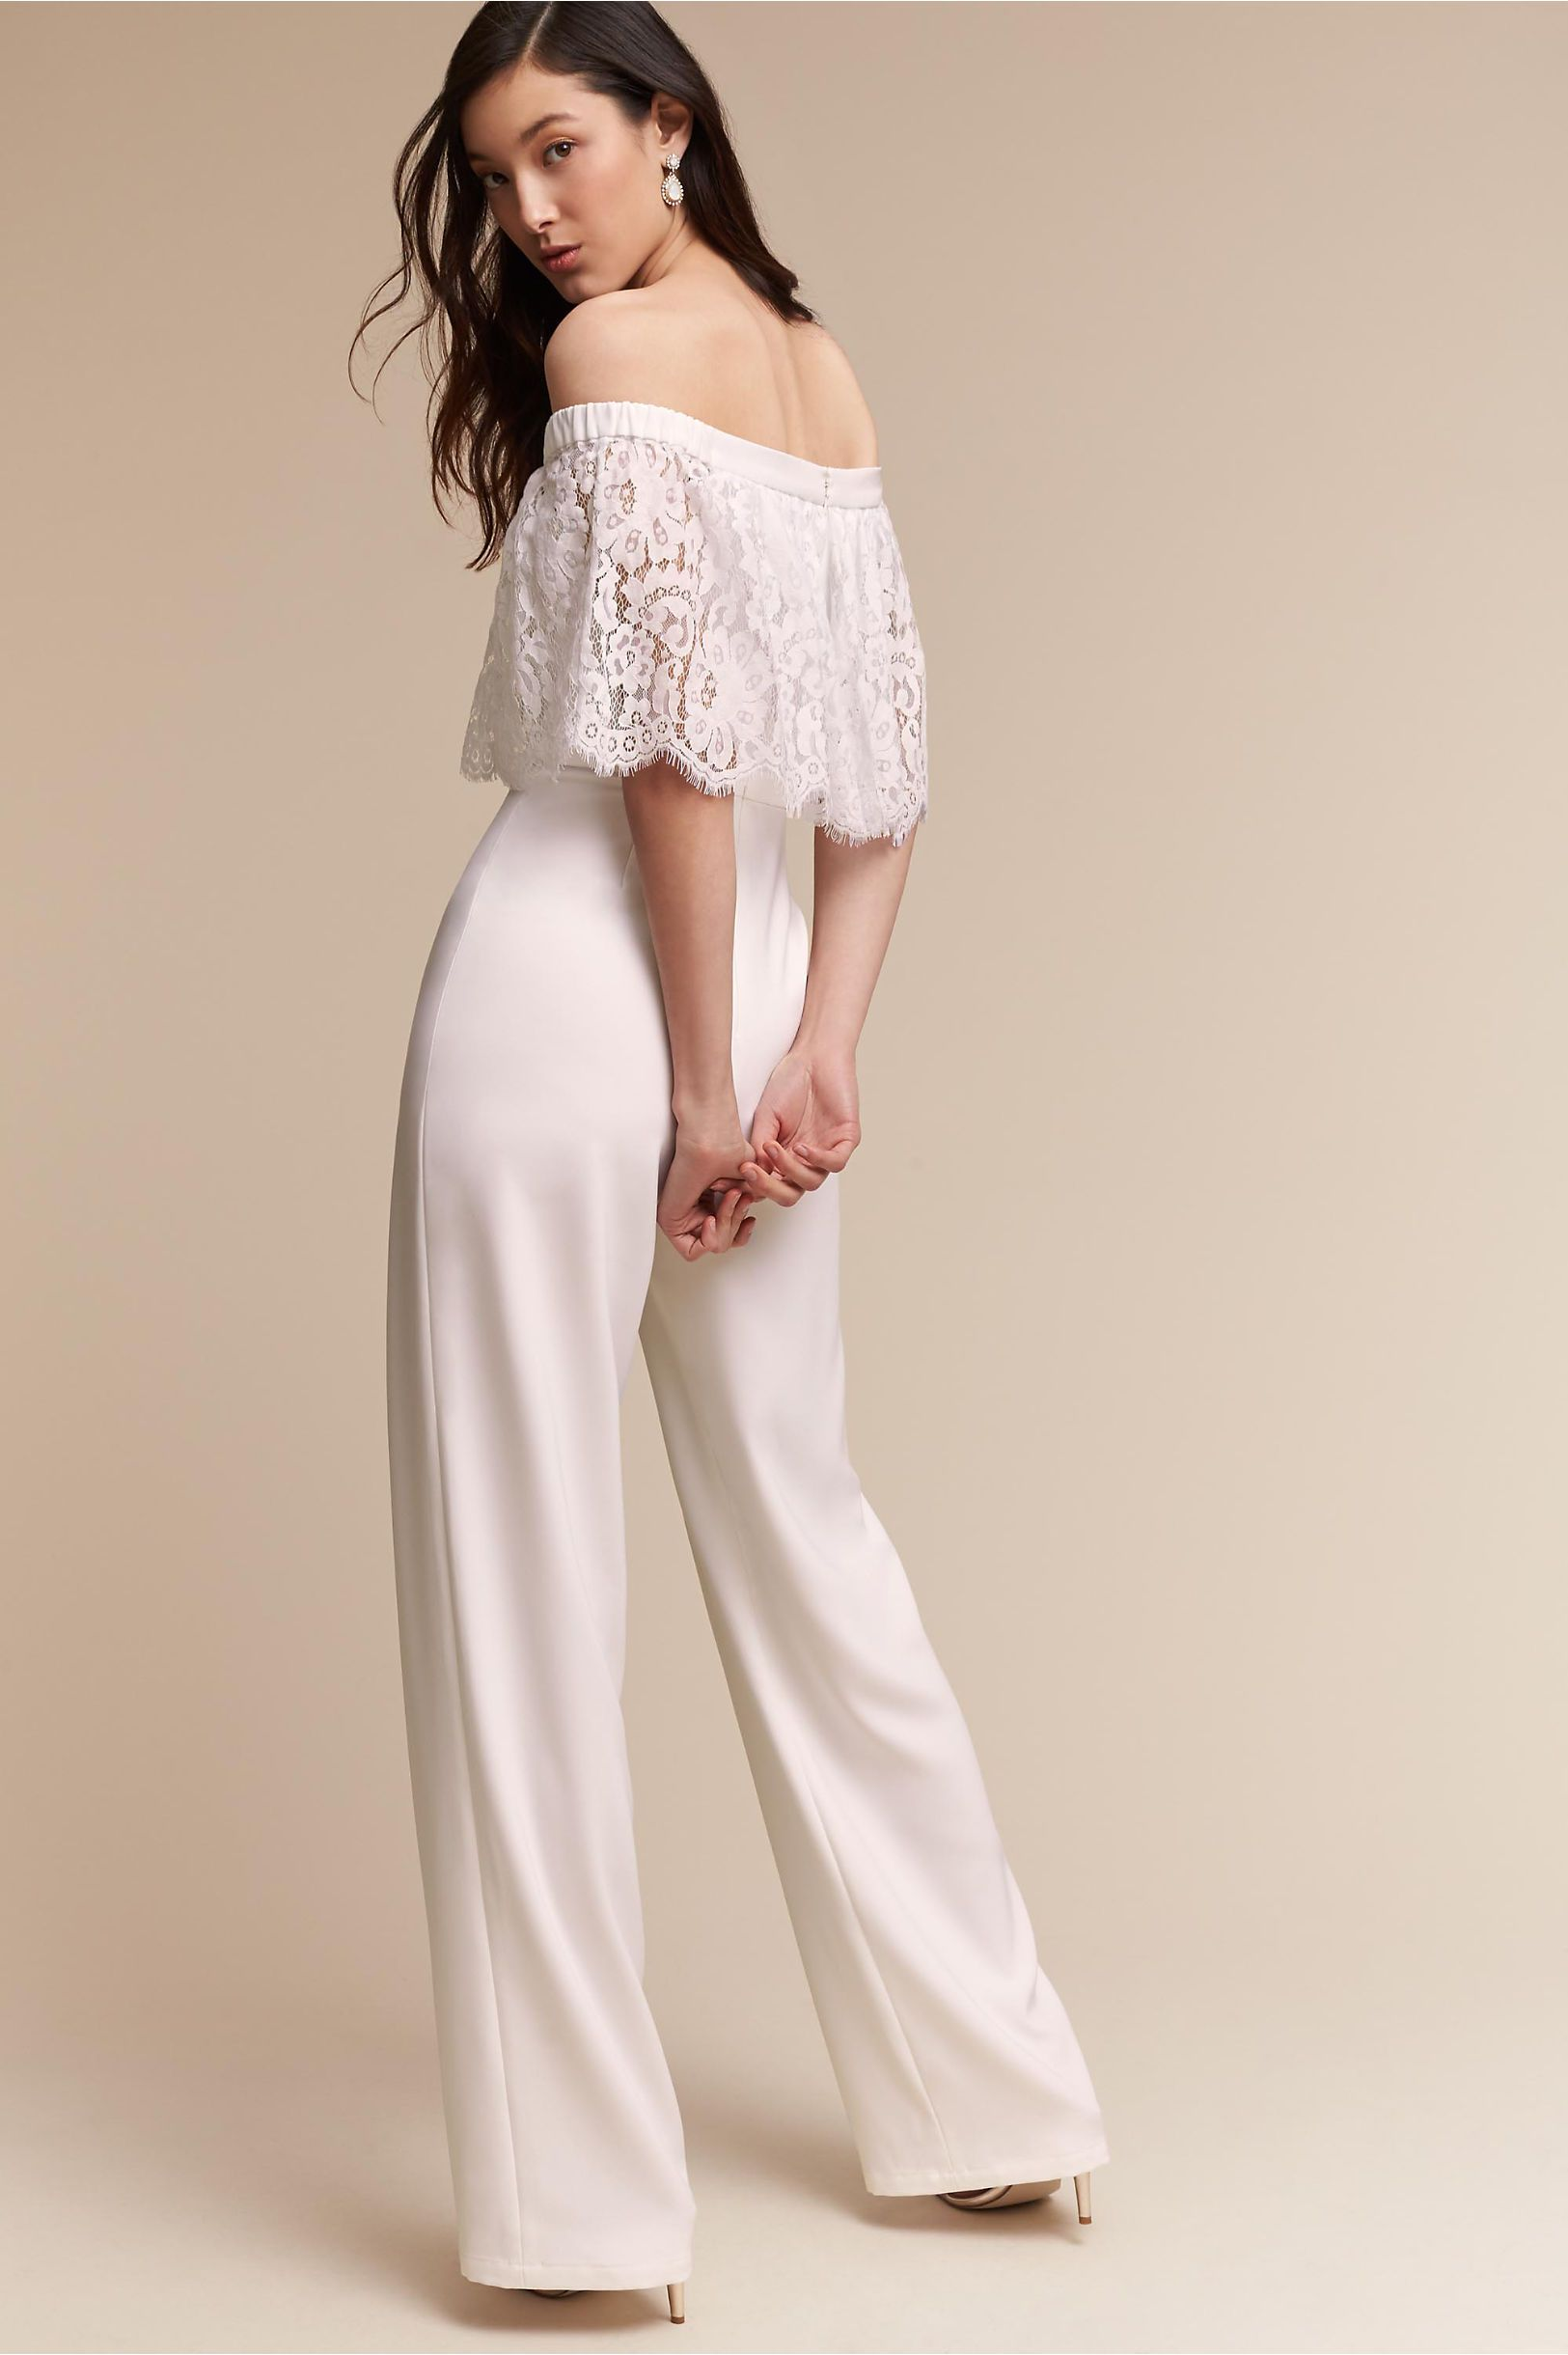 Dresses for guests at a beach wedding  BHLDN Mila Jumpsuit in Sale  BHLDN  FORMALWEAR SPECIAL OCCASION